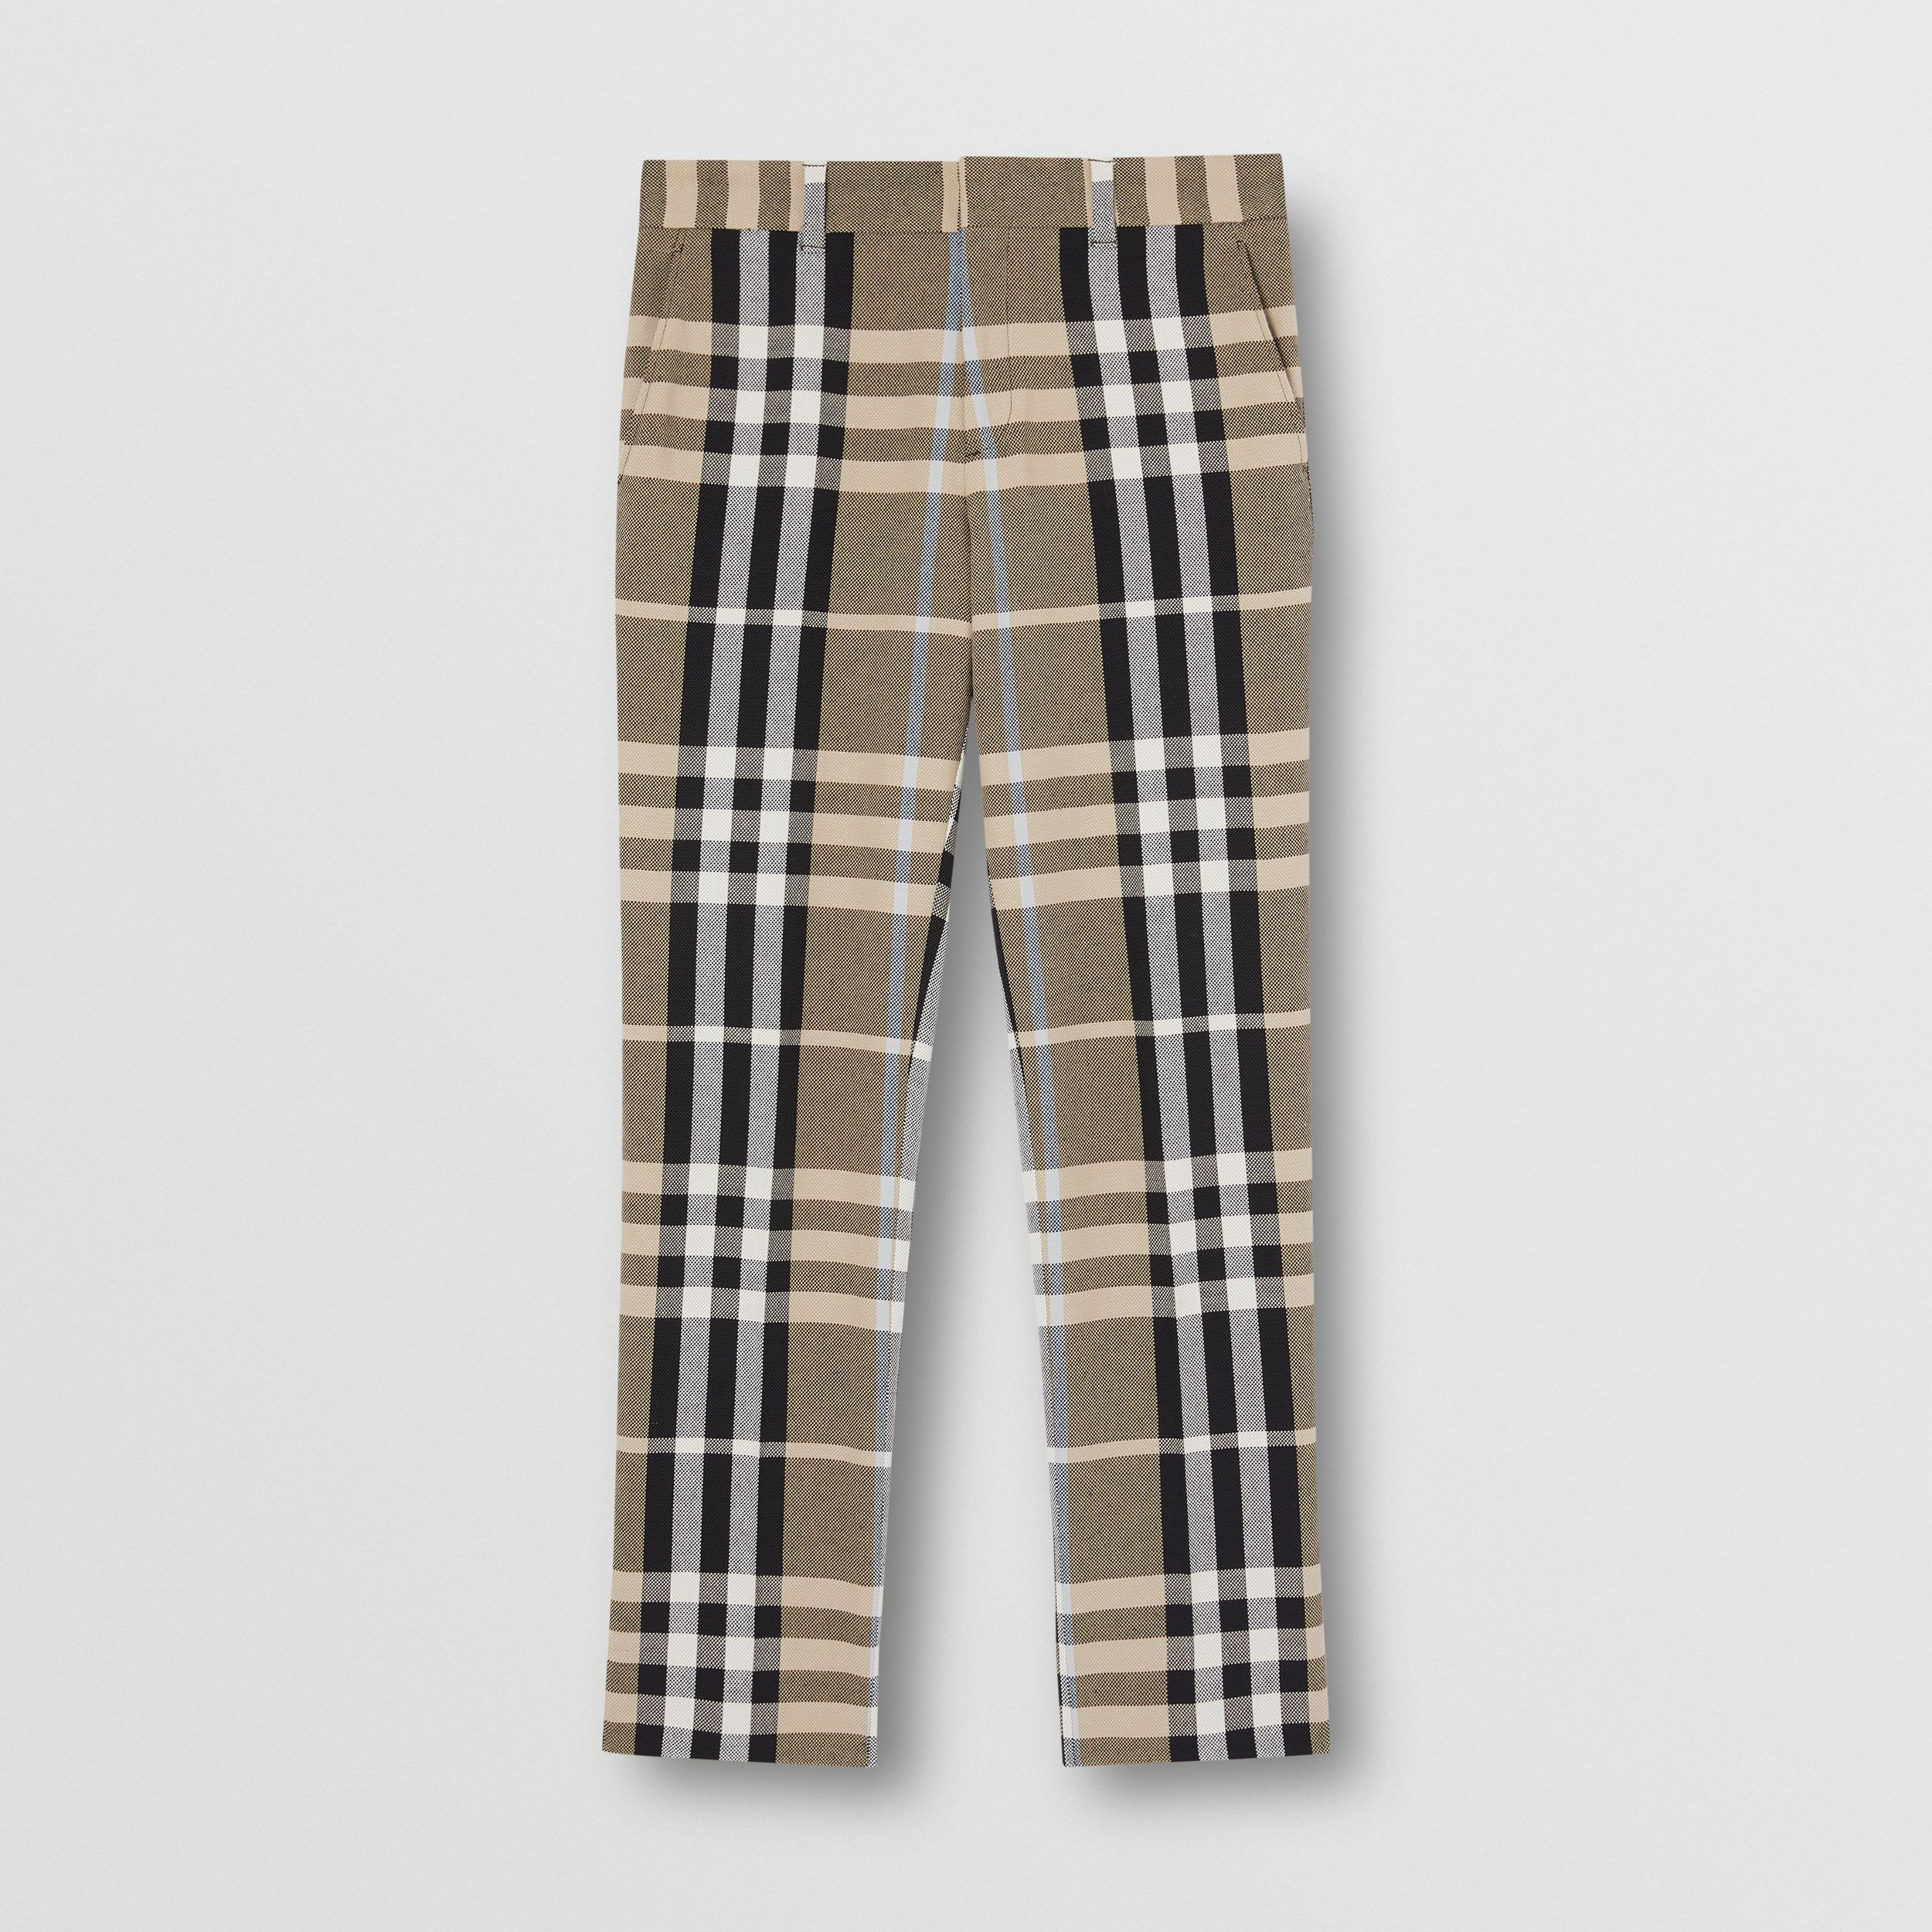 Slim Fit Check Technical Cotton Tailored Trousers in Dusty Sand | Burberry - 4